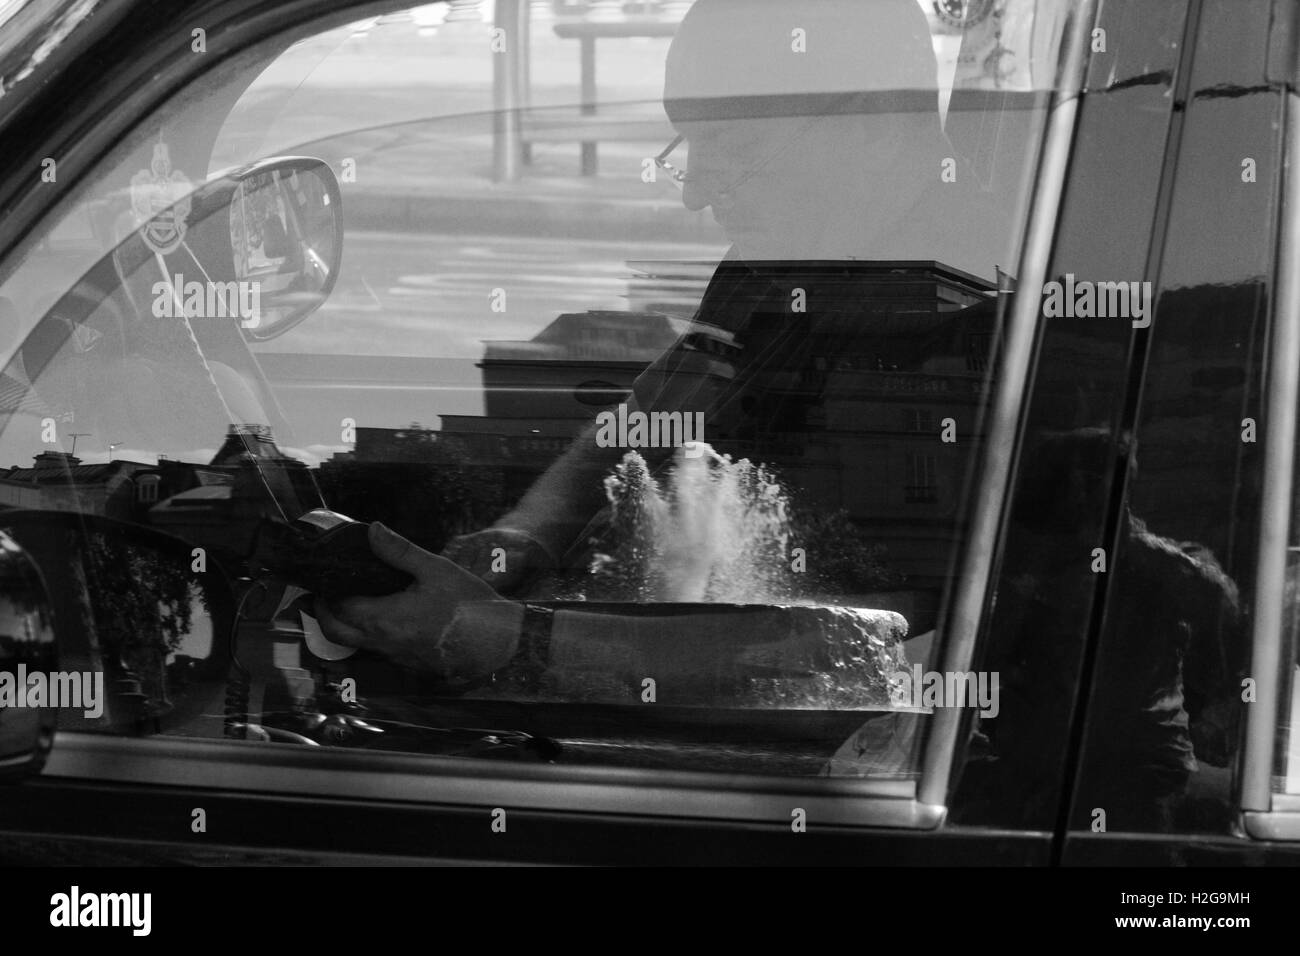 A London Taxi driver taking a card payment in Trafalgar Square - a reflection of one of the fountains in the door Stock Photo